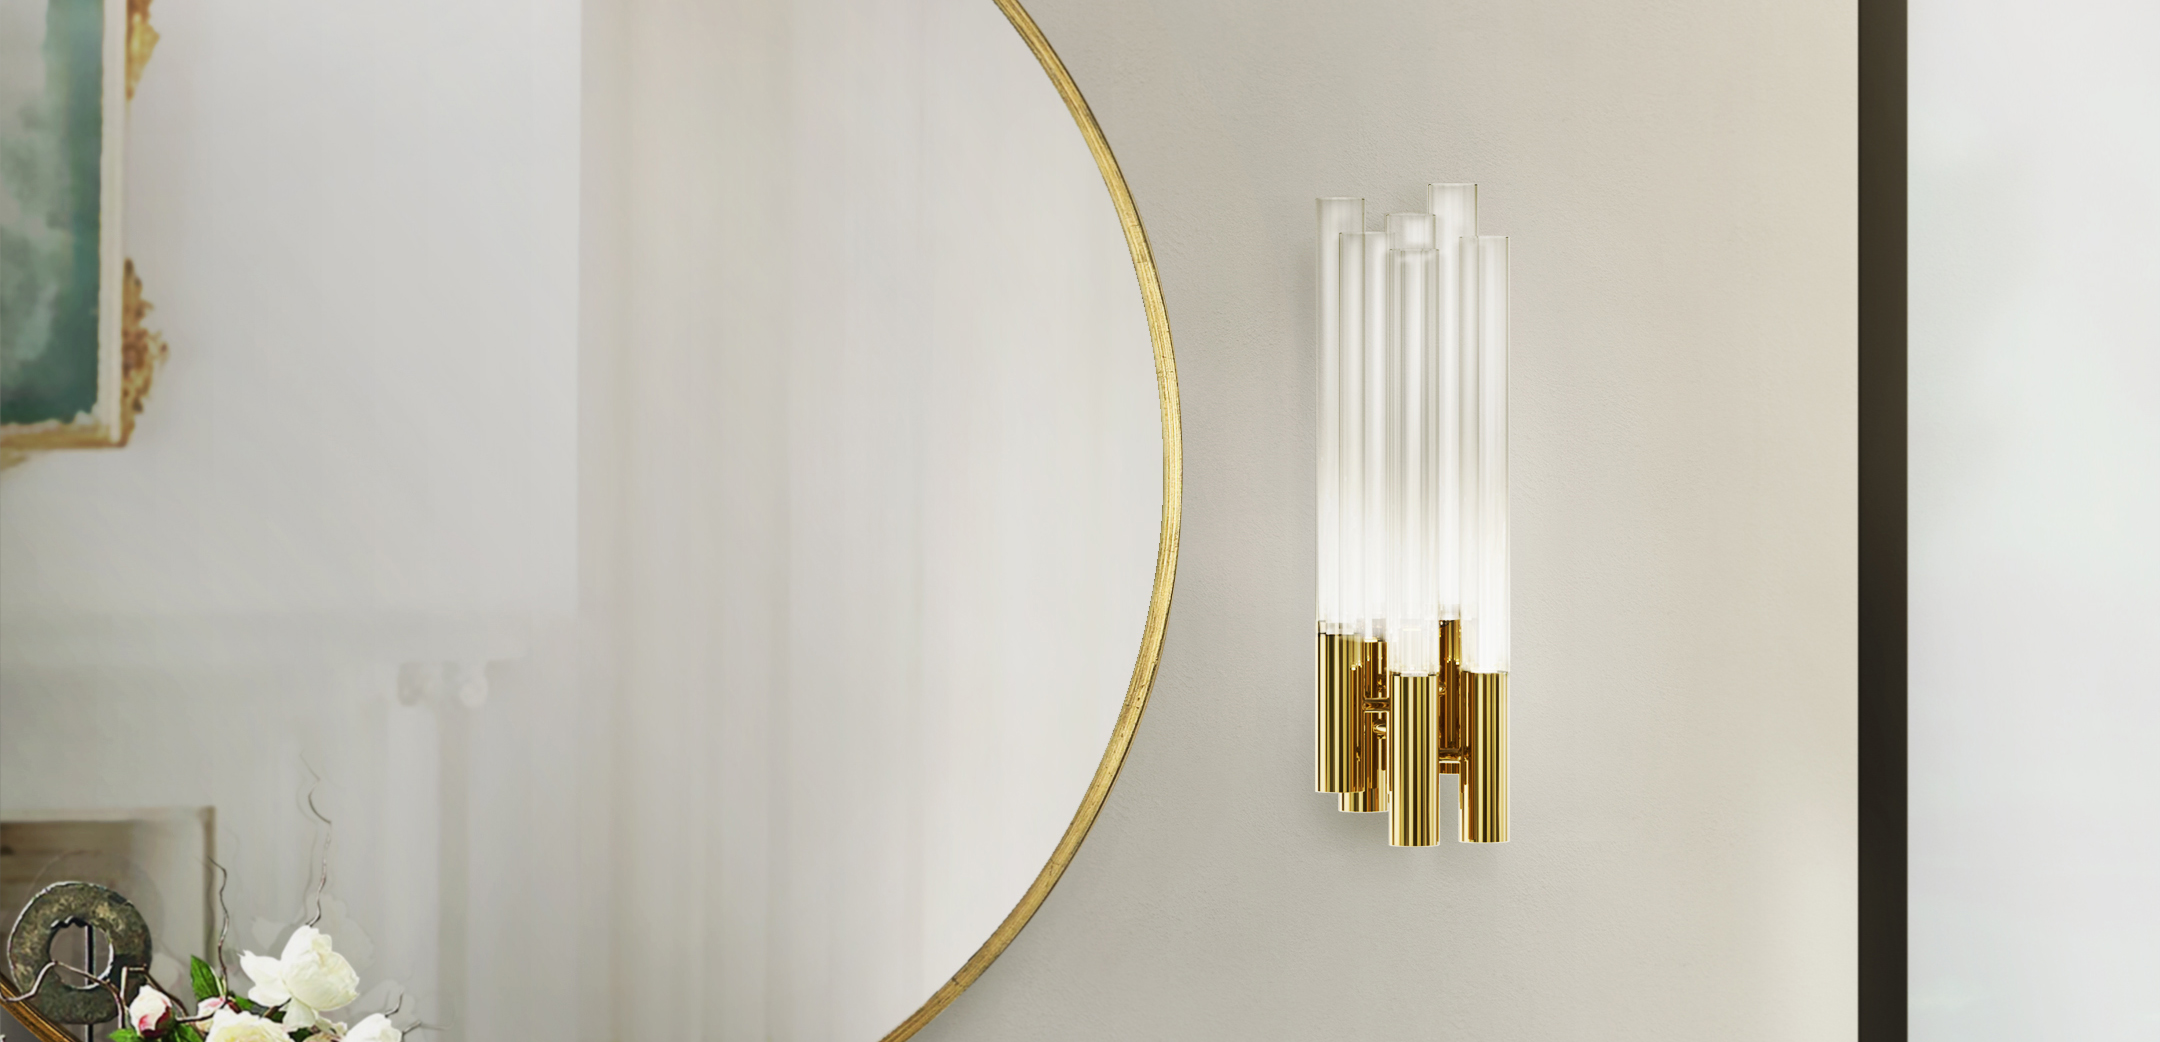 Ten wall lamps you'll fall in love by LUXXU masterpiece Find Empire Suspension, the new masterpiece by Luxxu Luxxu wall lamps feature masterpiece Find Empire Suspension, the new masterpiece by Luxxu Luxxu wall lamps feature